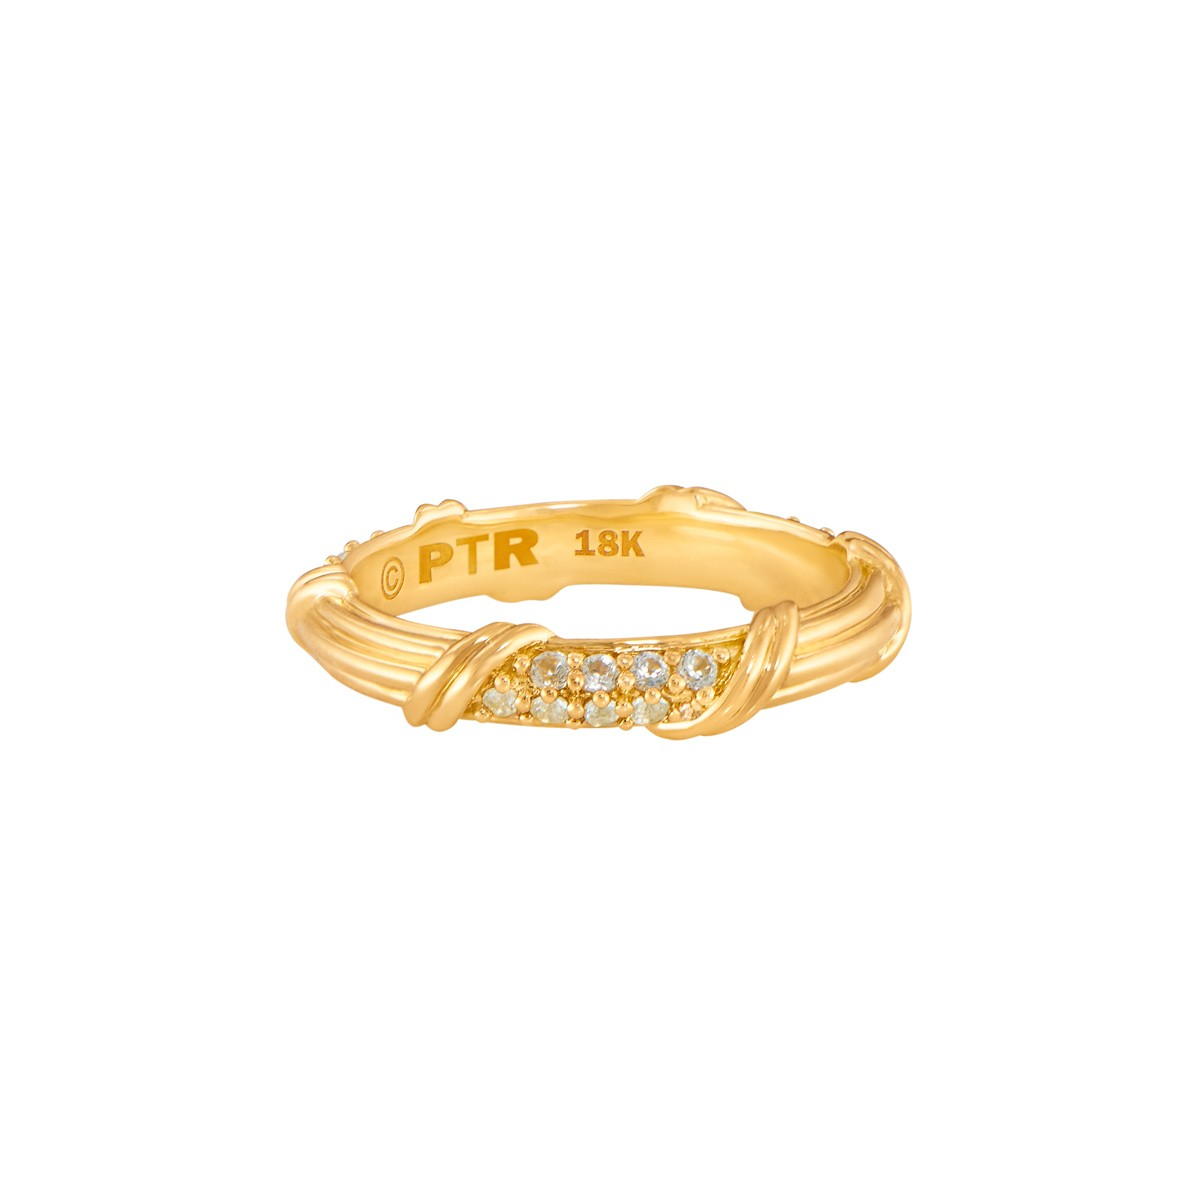 Heritage Pave Band Ring with white sapphires in 18K yellow gold 3mm